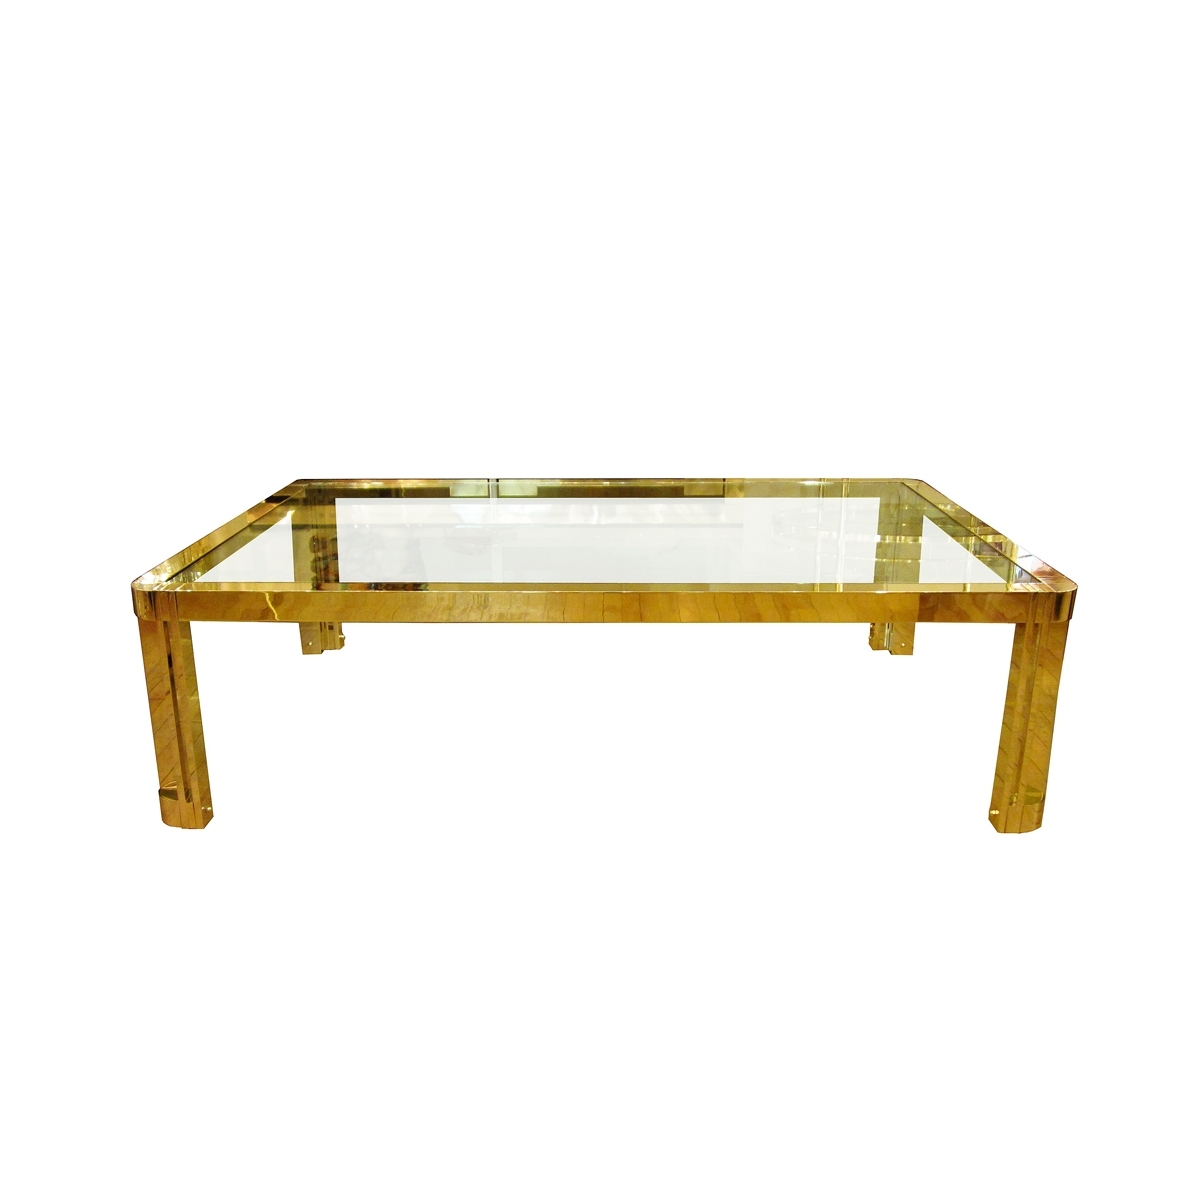 2018 Rectangular Coffee Tables With Brass Legs Regarding Large Rectangular Brass And Glass Coffee Table With Incised Design (Gallery 5 of 20)